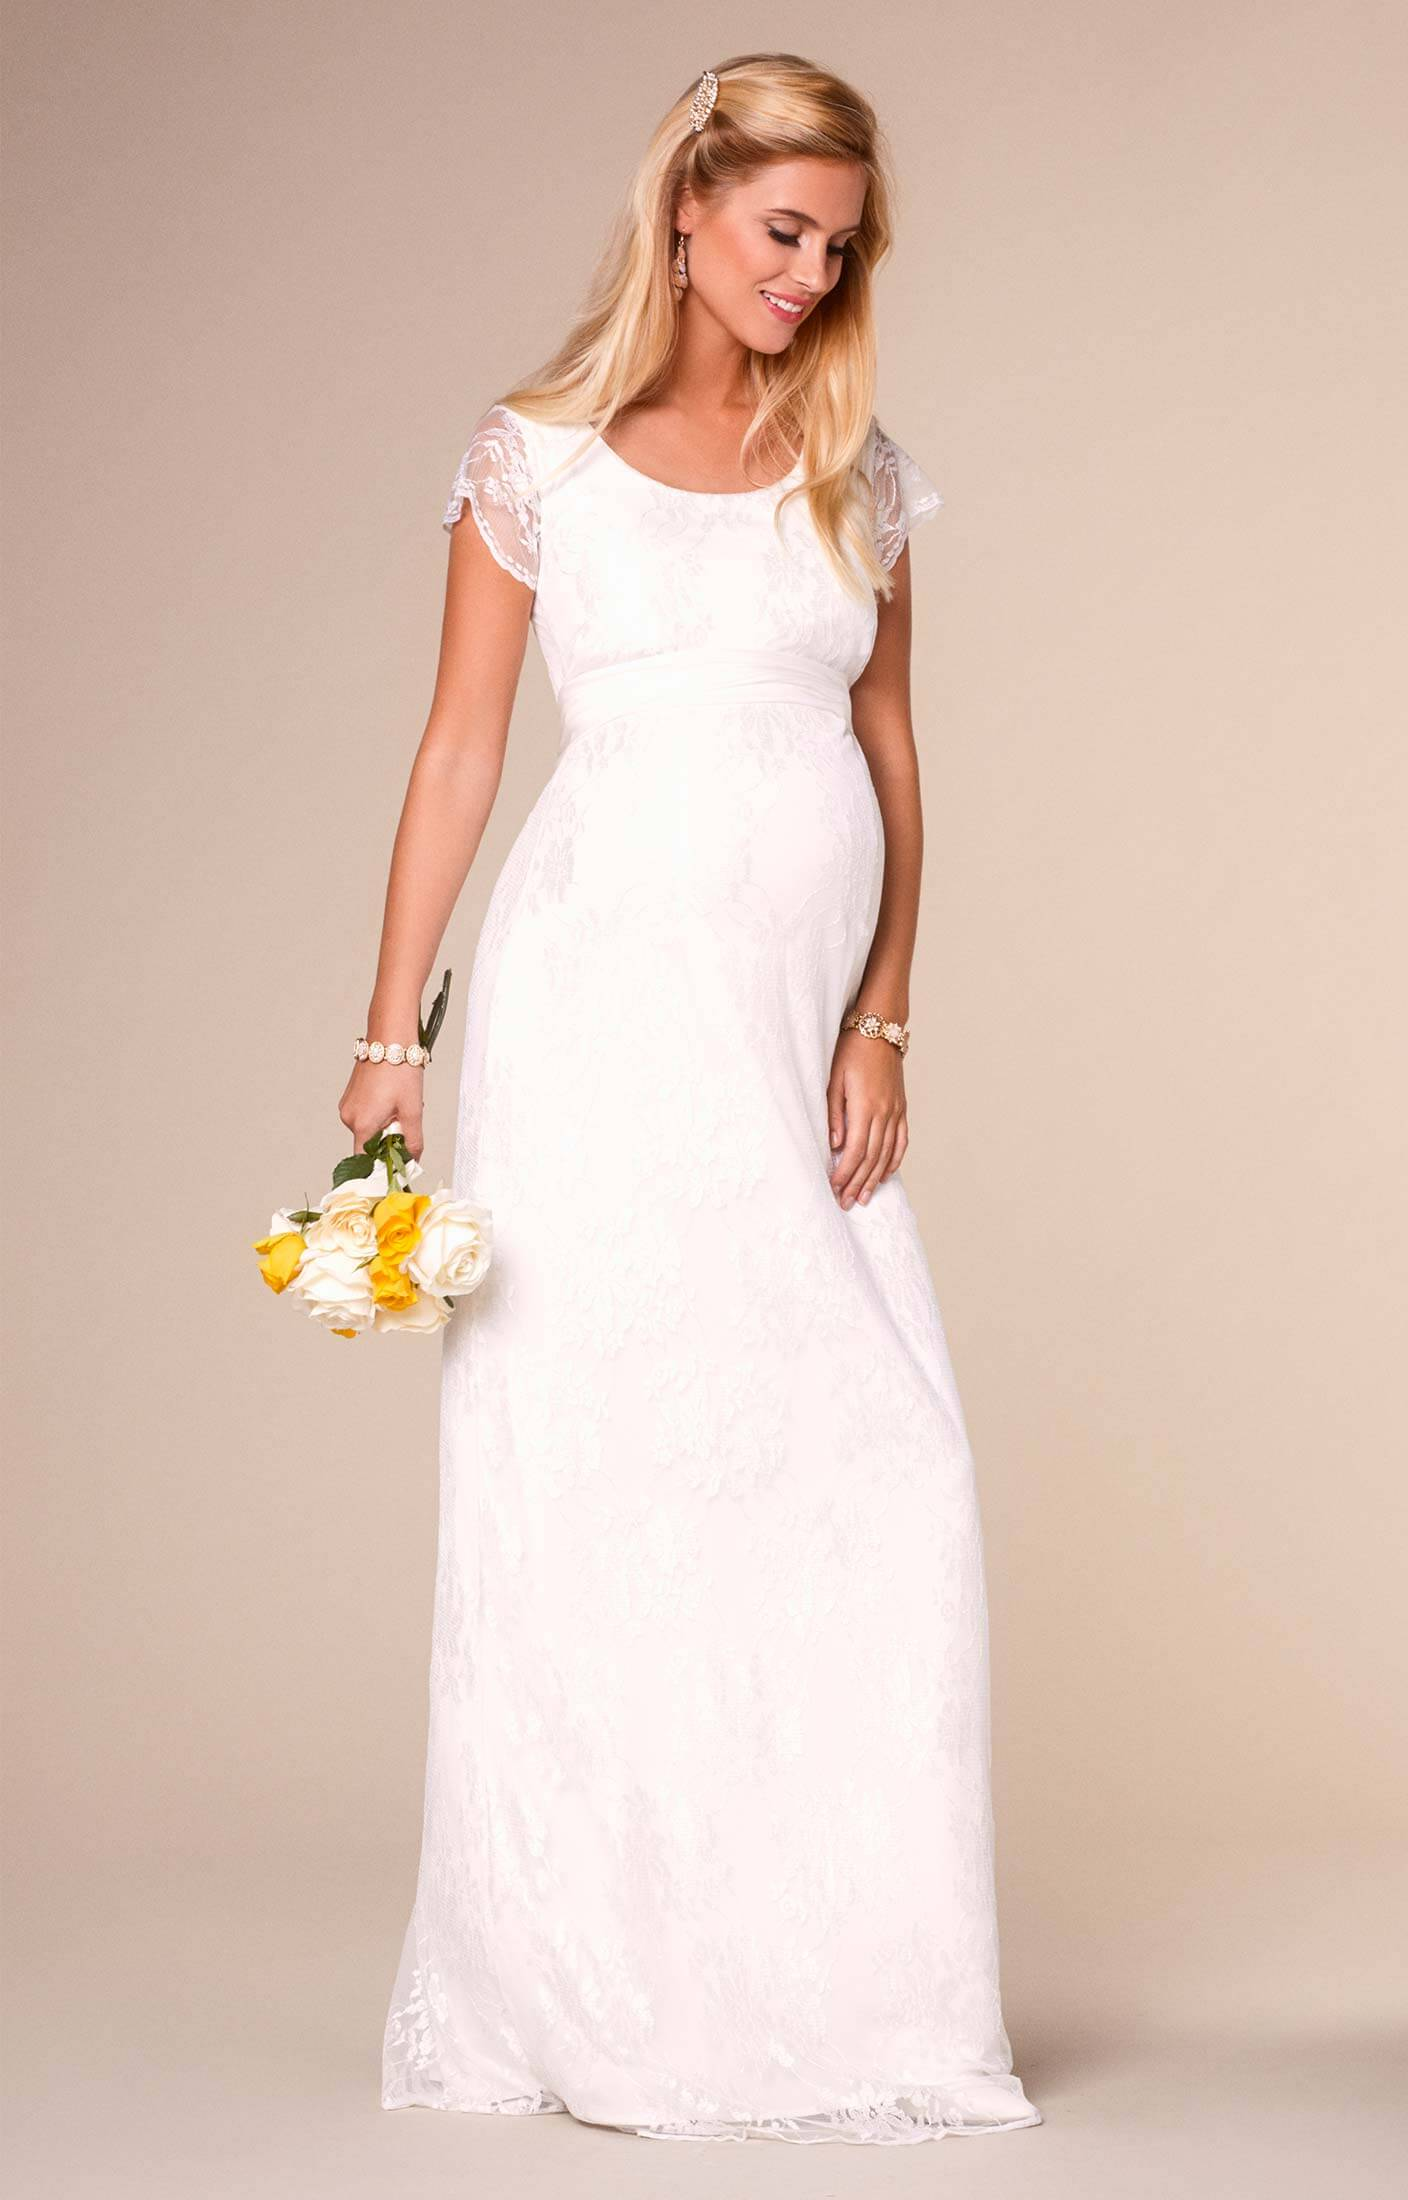 April Wedding Nursing Lace Gown Long Ivory - Maternity Wedding ...